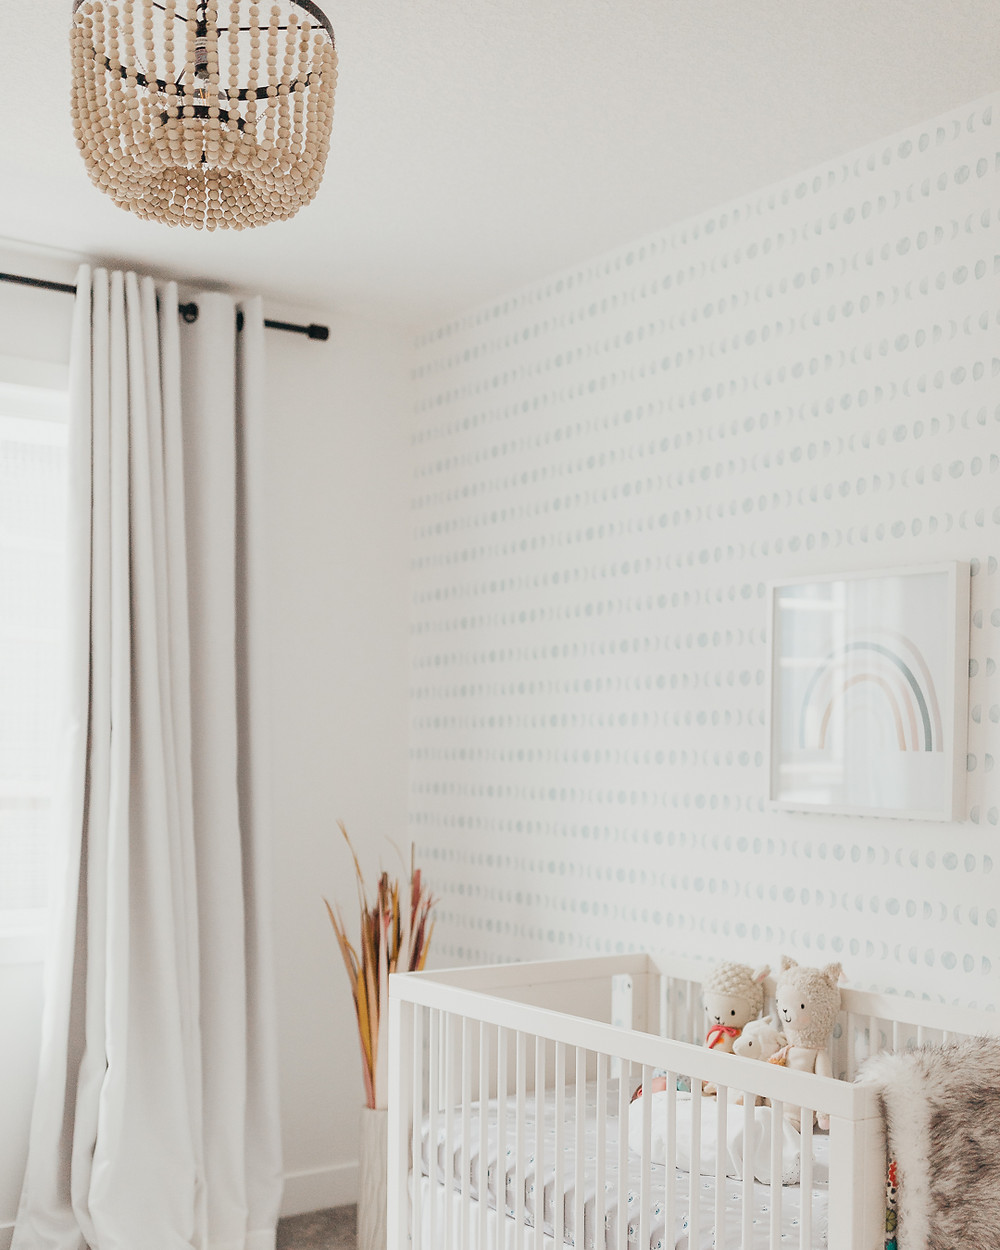 Wood bead chandeilier nursery white crib against wall with rainbow print and blue spotted wallpaper accent cream drapes grasses in vase in corner stuffed animals